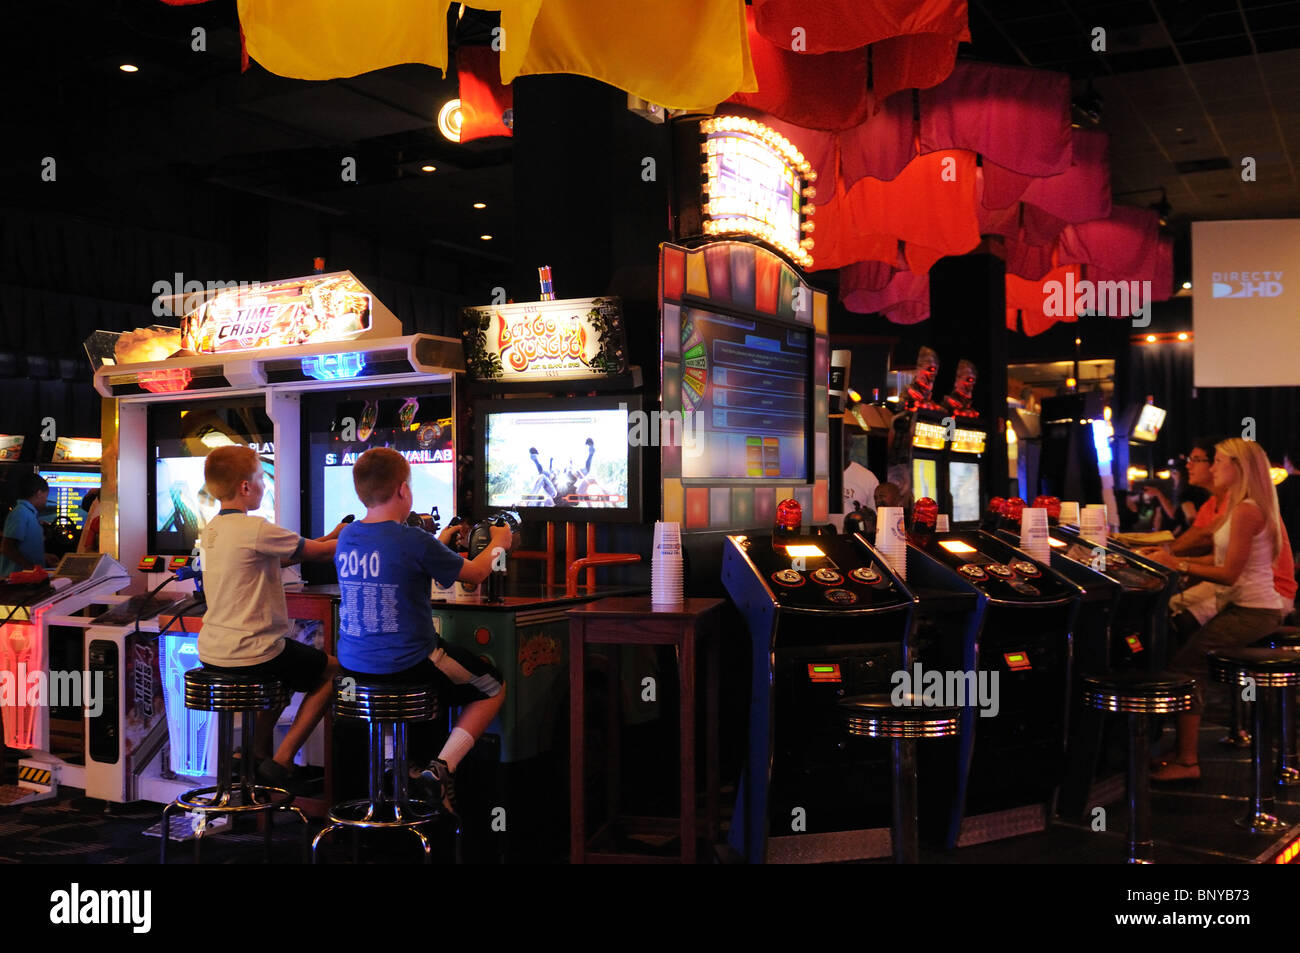 People playing games at a video arcade in midtown Manhattan. - Stock Image